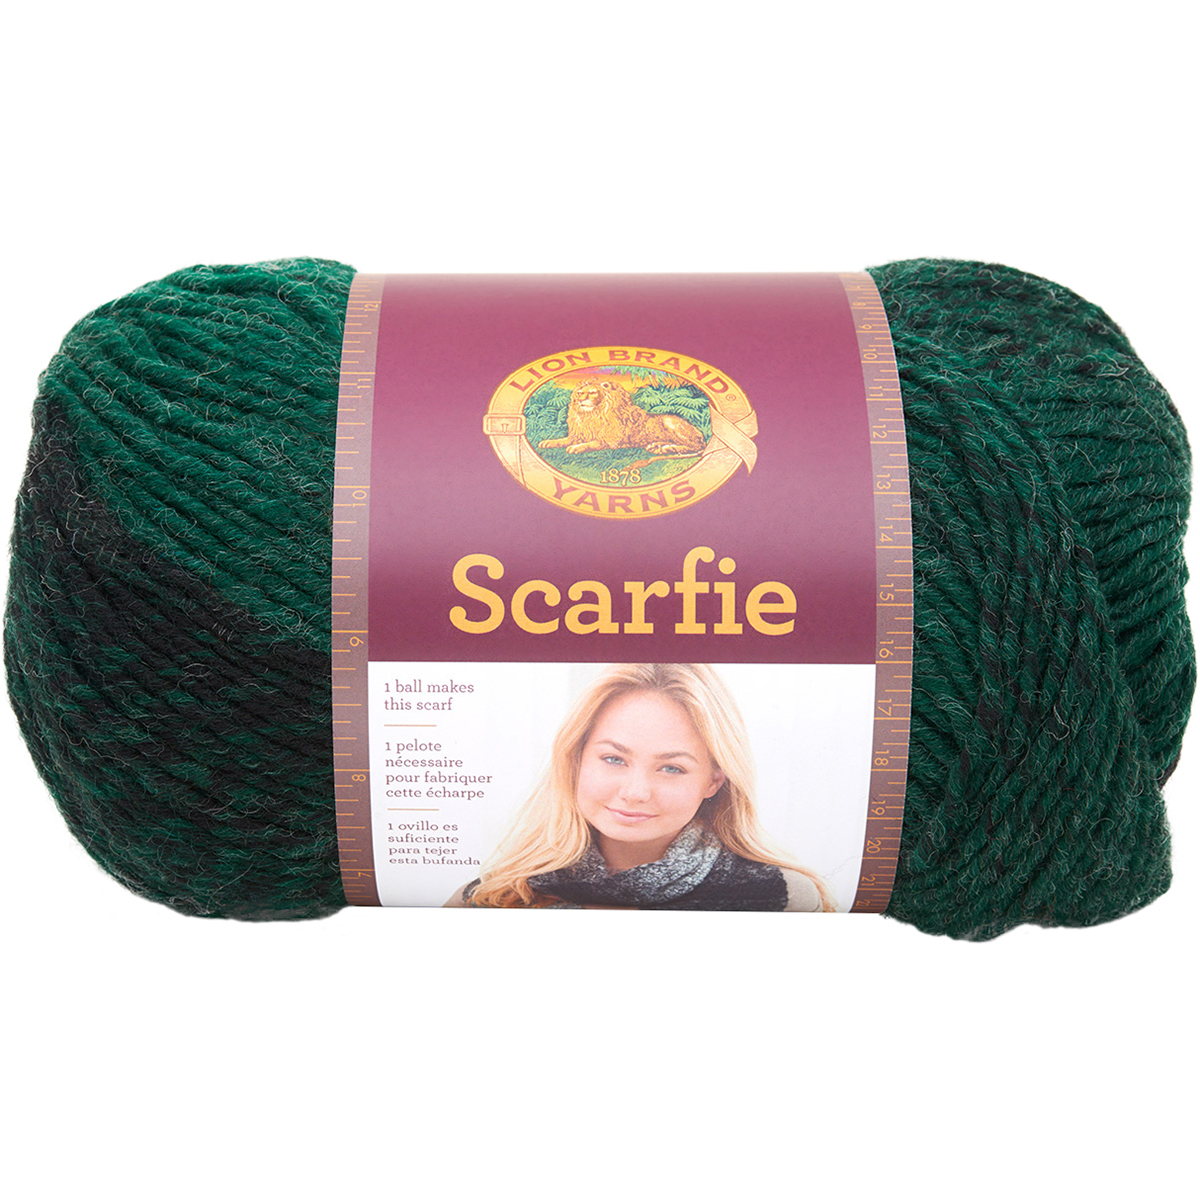 Crochet Patterns Scarfie Yarn : ... Crocheting Additions ? Lion Brand Scarfie Yarn ? Lion Brand Scarfie